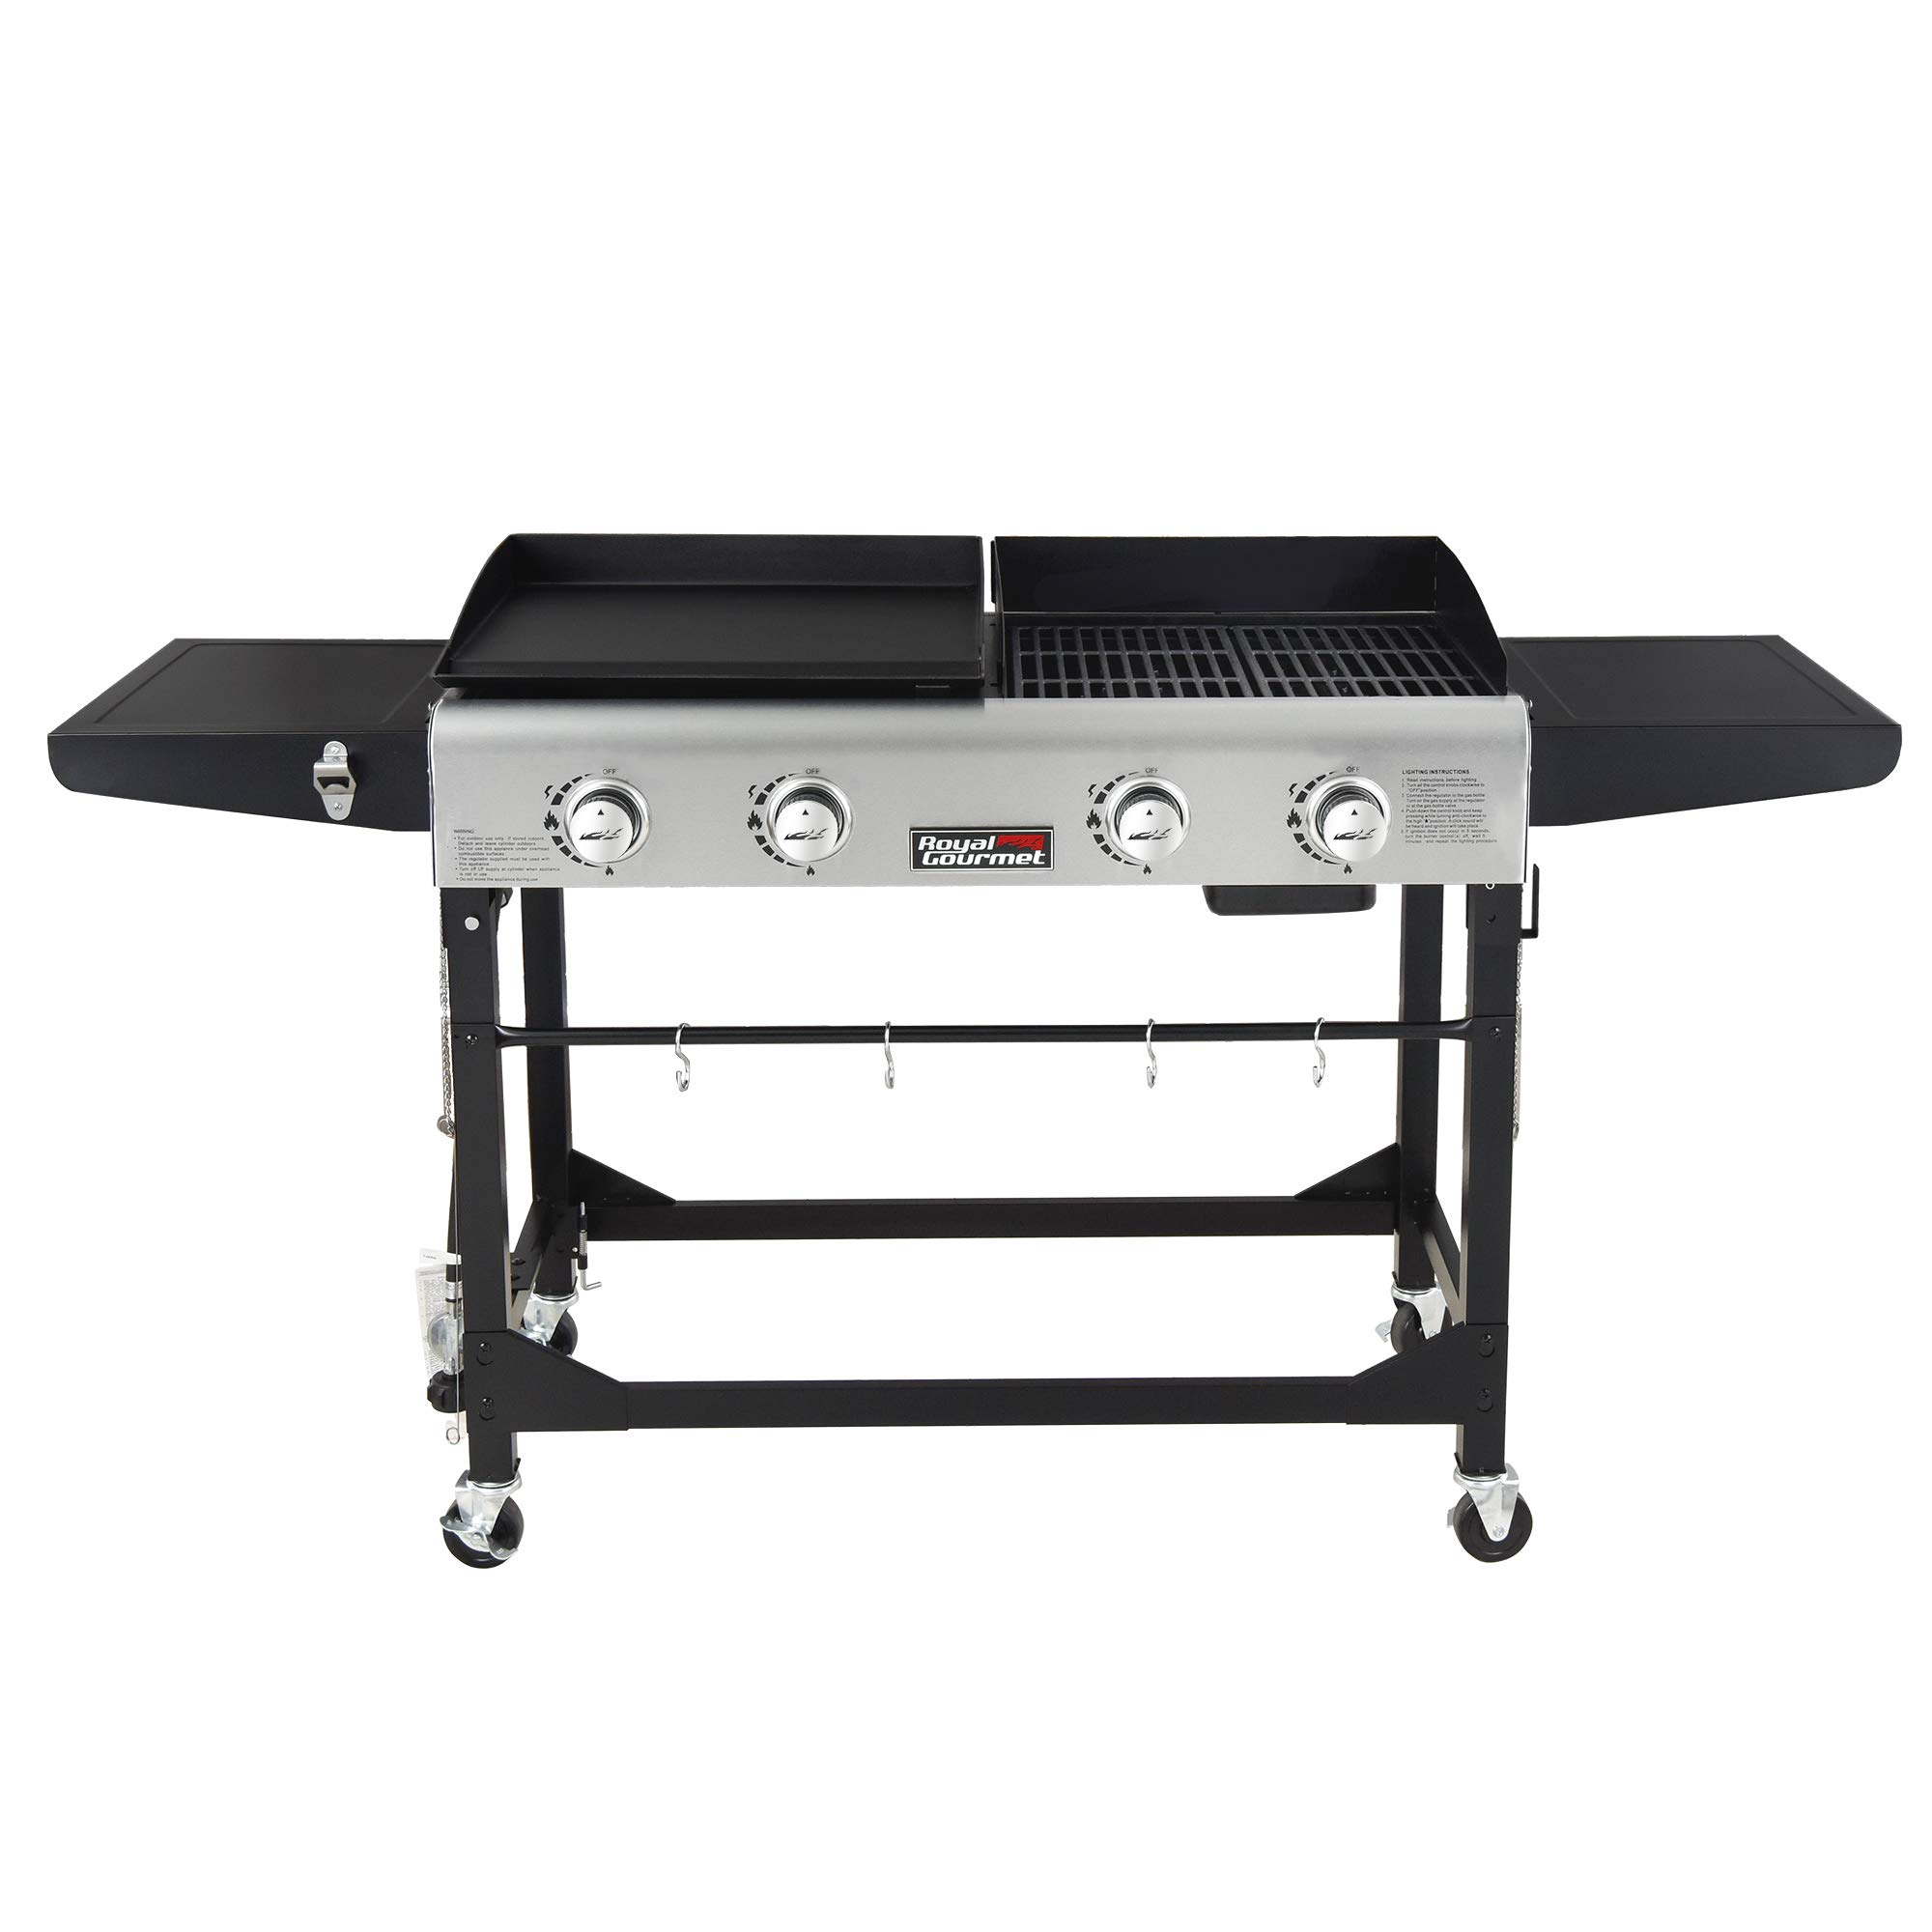 Royal Gourmet GD401 Portable Propane Gas Grill and Griddle Combo,4-Burner,Griddle Flat Top